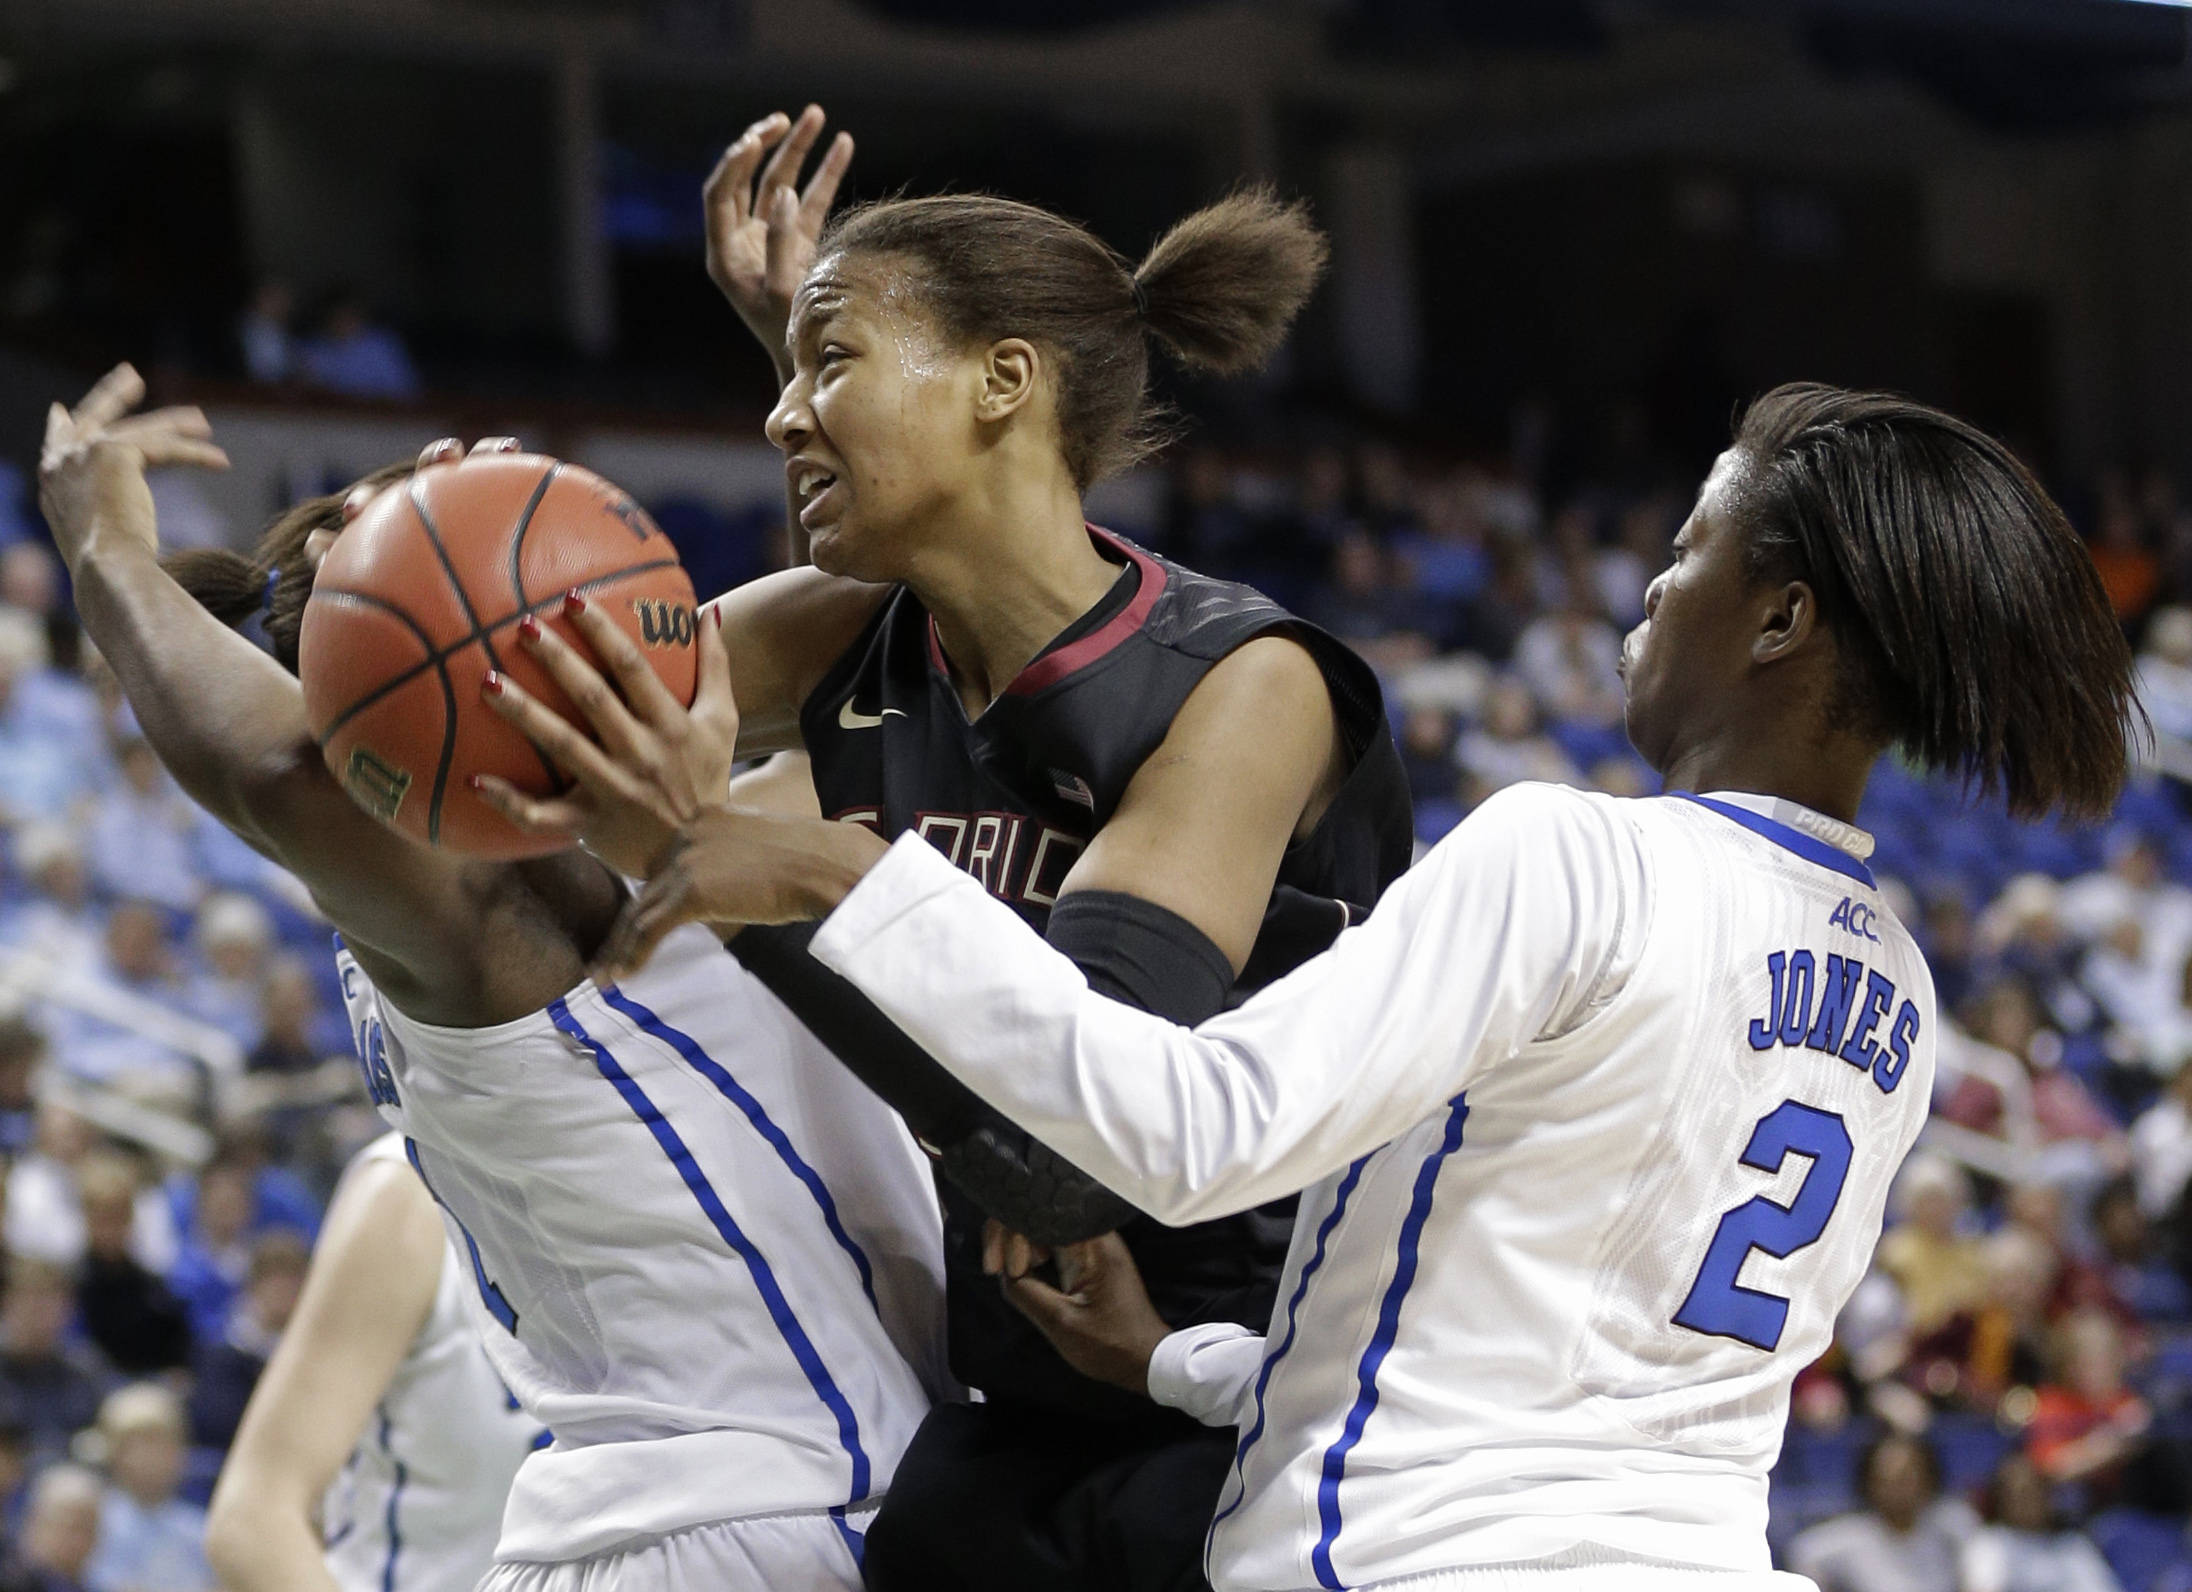 Florida State's Chelsea Davis, center, drives between Duke's Alexis Jones, right, and Elizabeth Williams. (AP Photo/Chuck Burton)